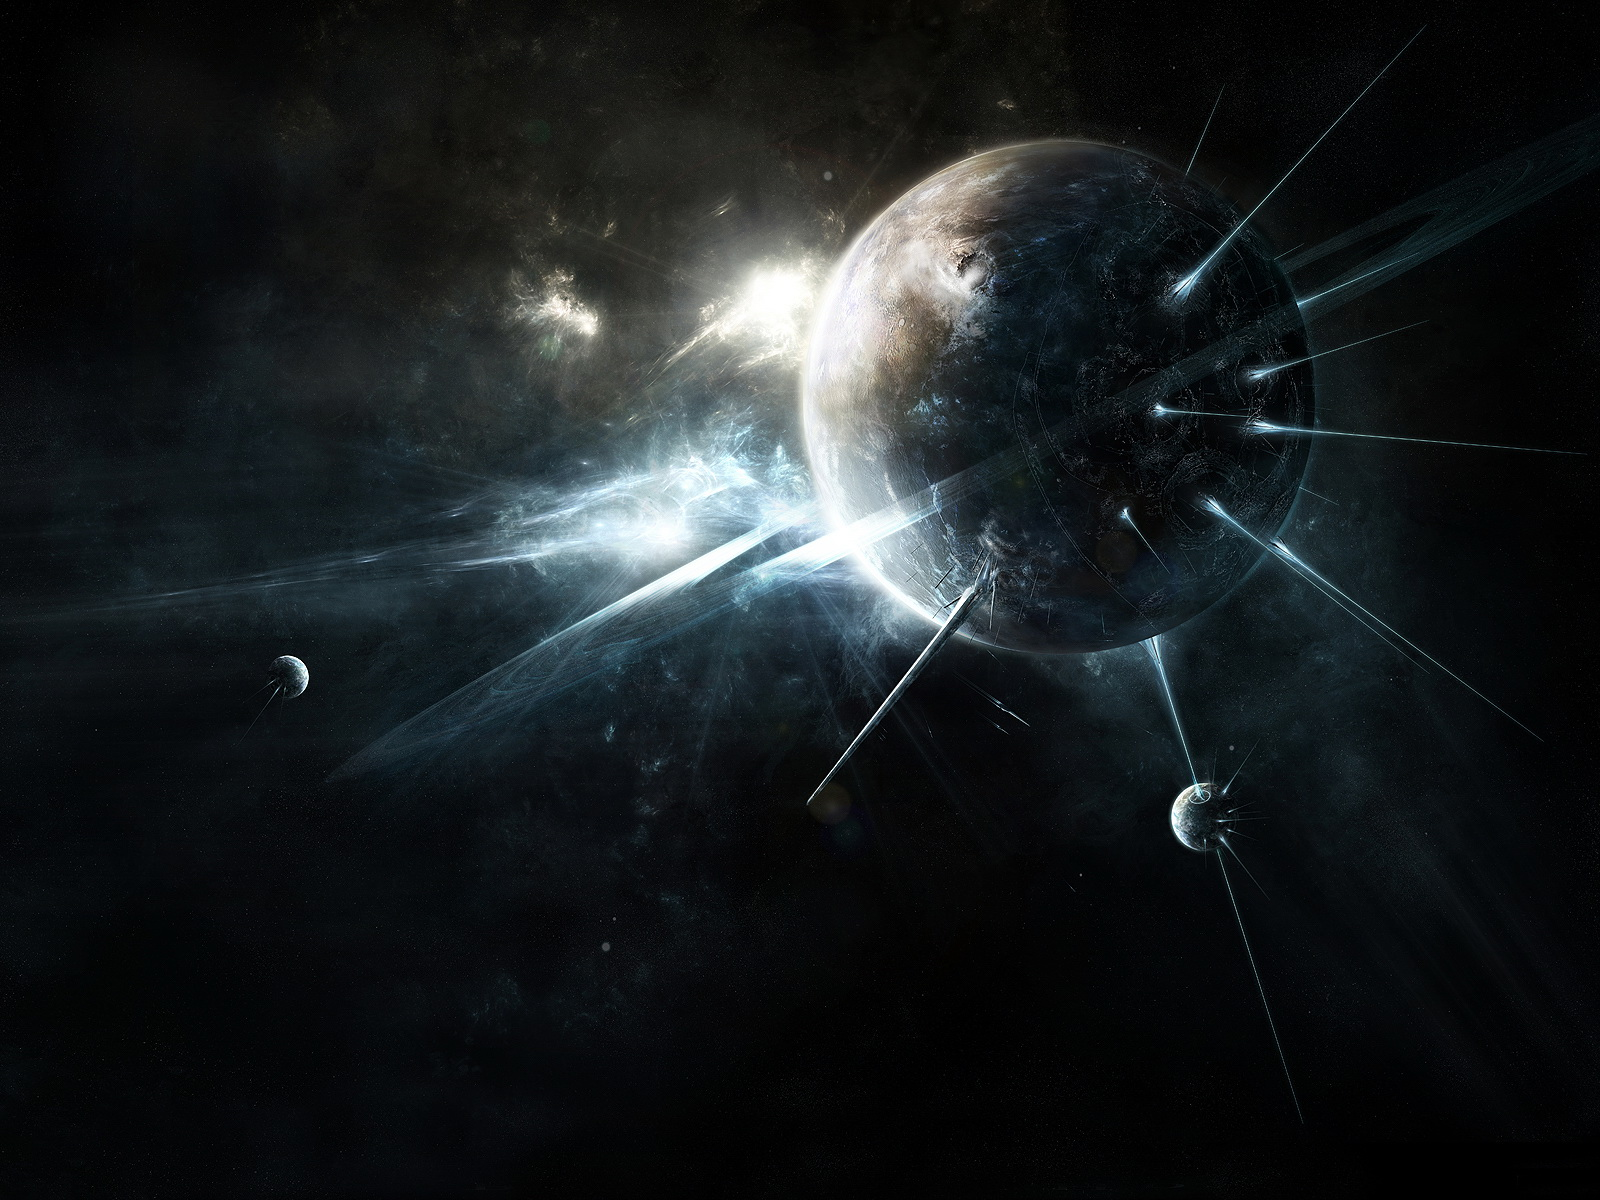 Mac OS X Wallpapers Abstract Space Wallpaper 1600x1200